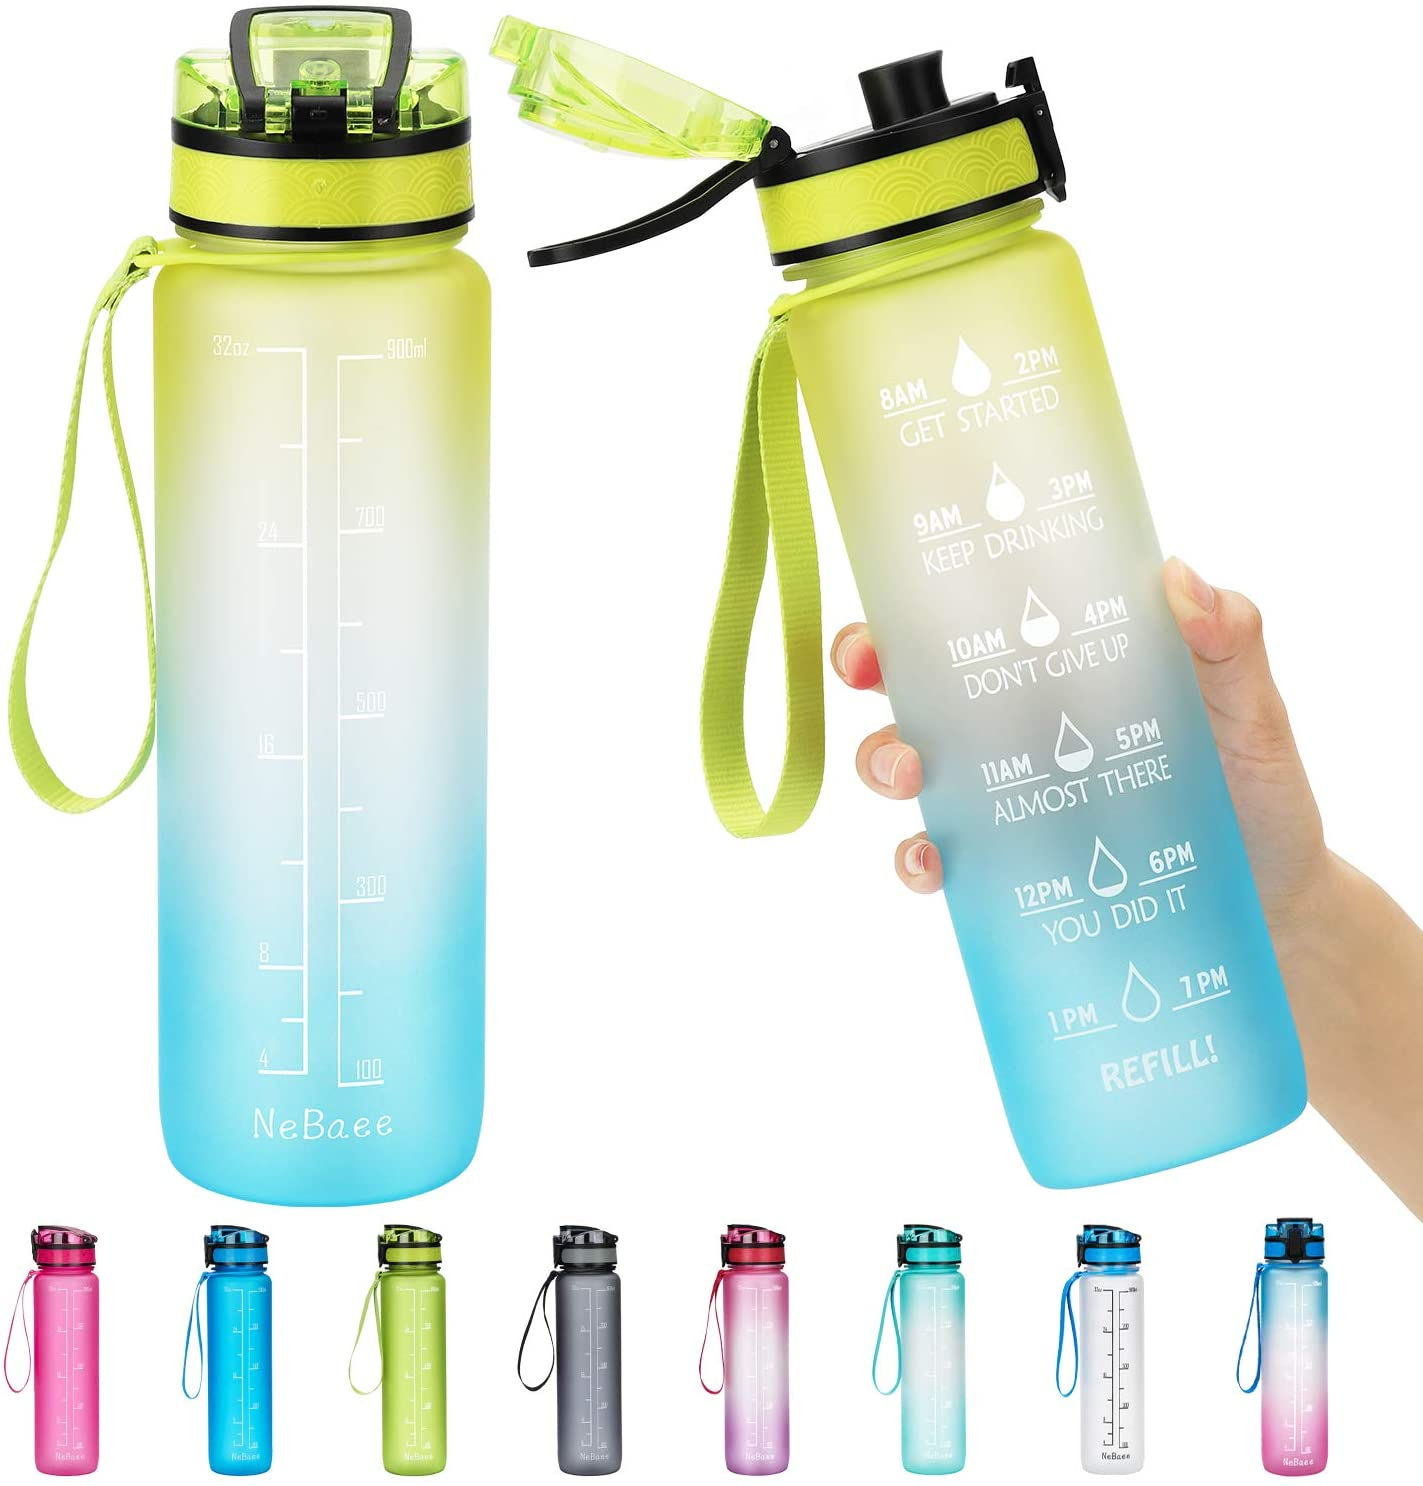 NeBaee 32oz / 24oz Motivational Tritan Water Bottle with Time Marker,BPA-Free,Leak Proof,Fruit Ice Cube Infuser for Fitness Gym and Outdoor Activities (32oz, 32ozYellow-blue)